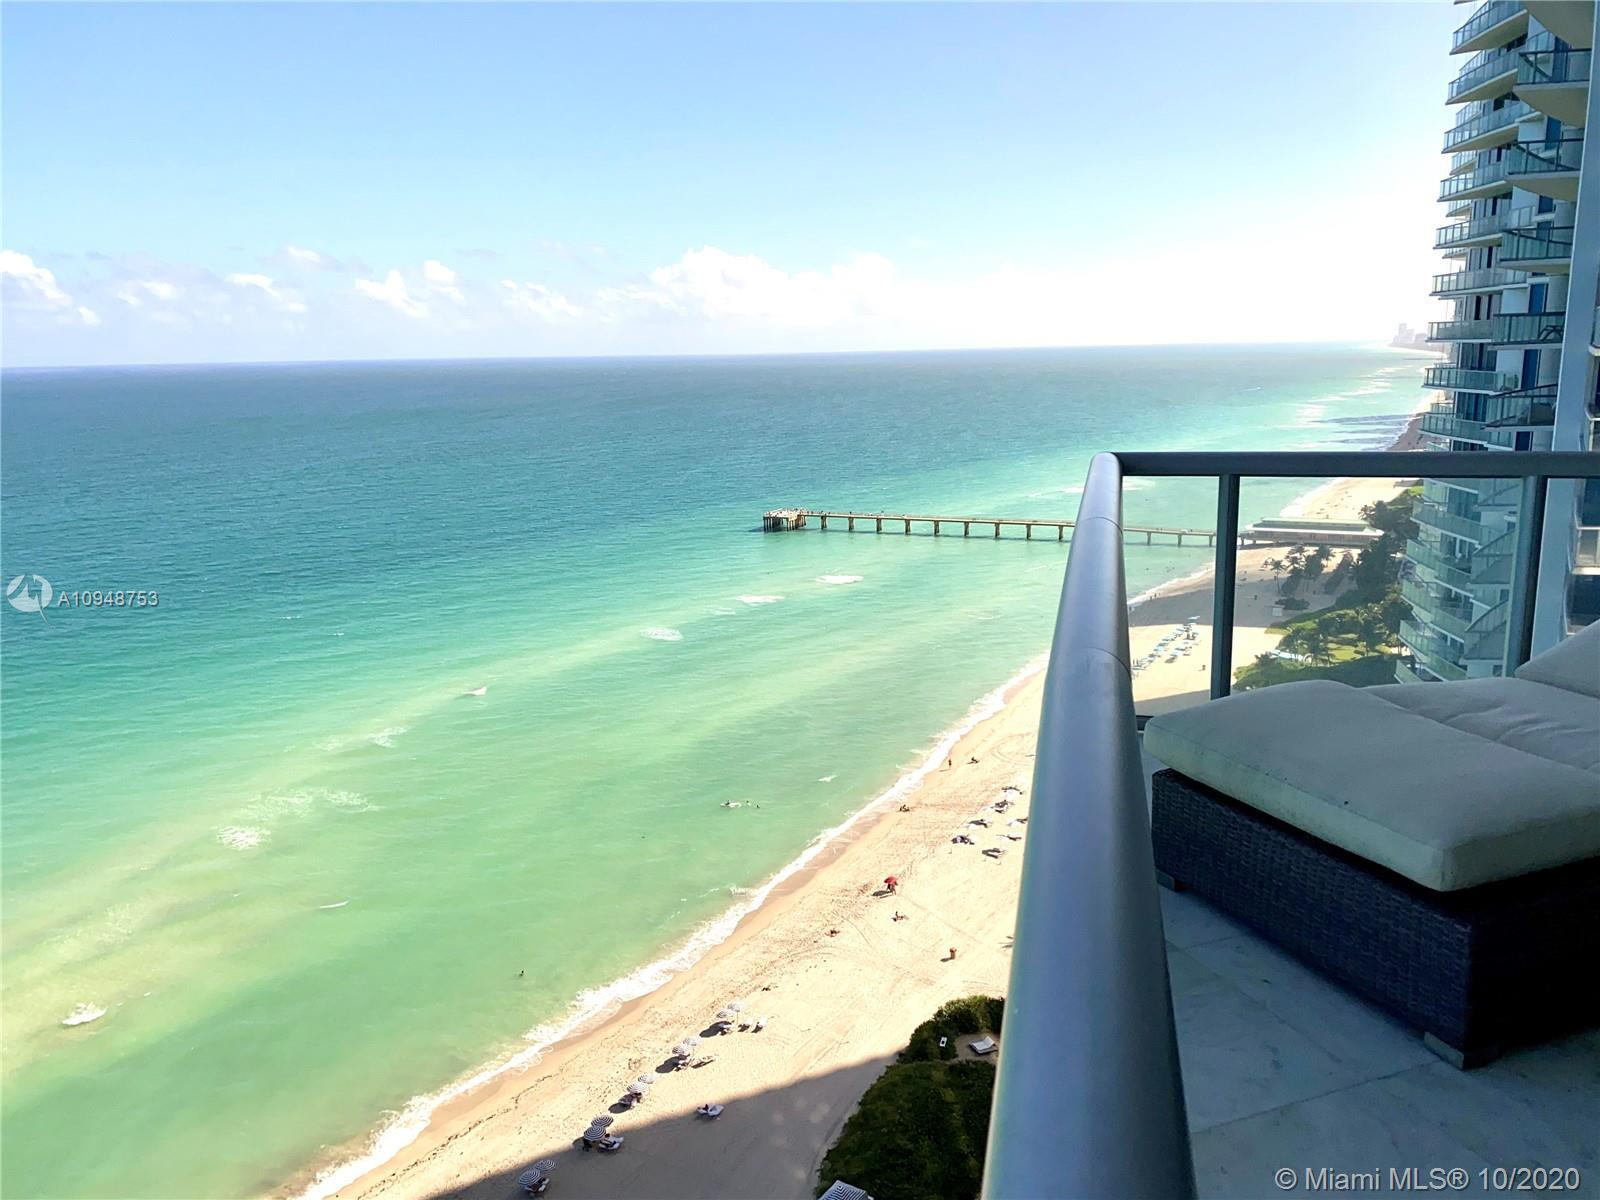 PRE-FORECLOSURE UNLIMITED OCEAN VIEWS FROM THIS ONE BEDROOM PLUS DEN with TWO full bath at the Luxur